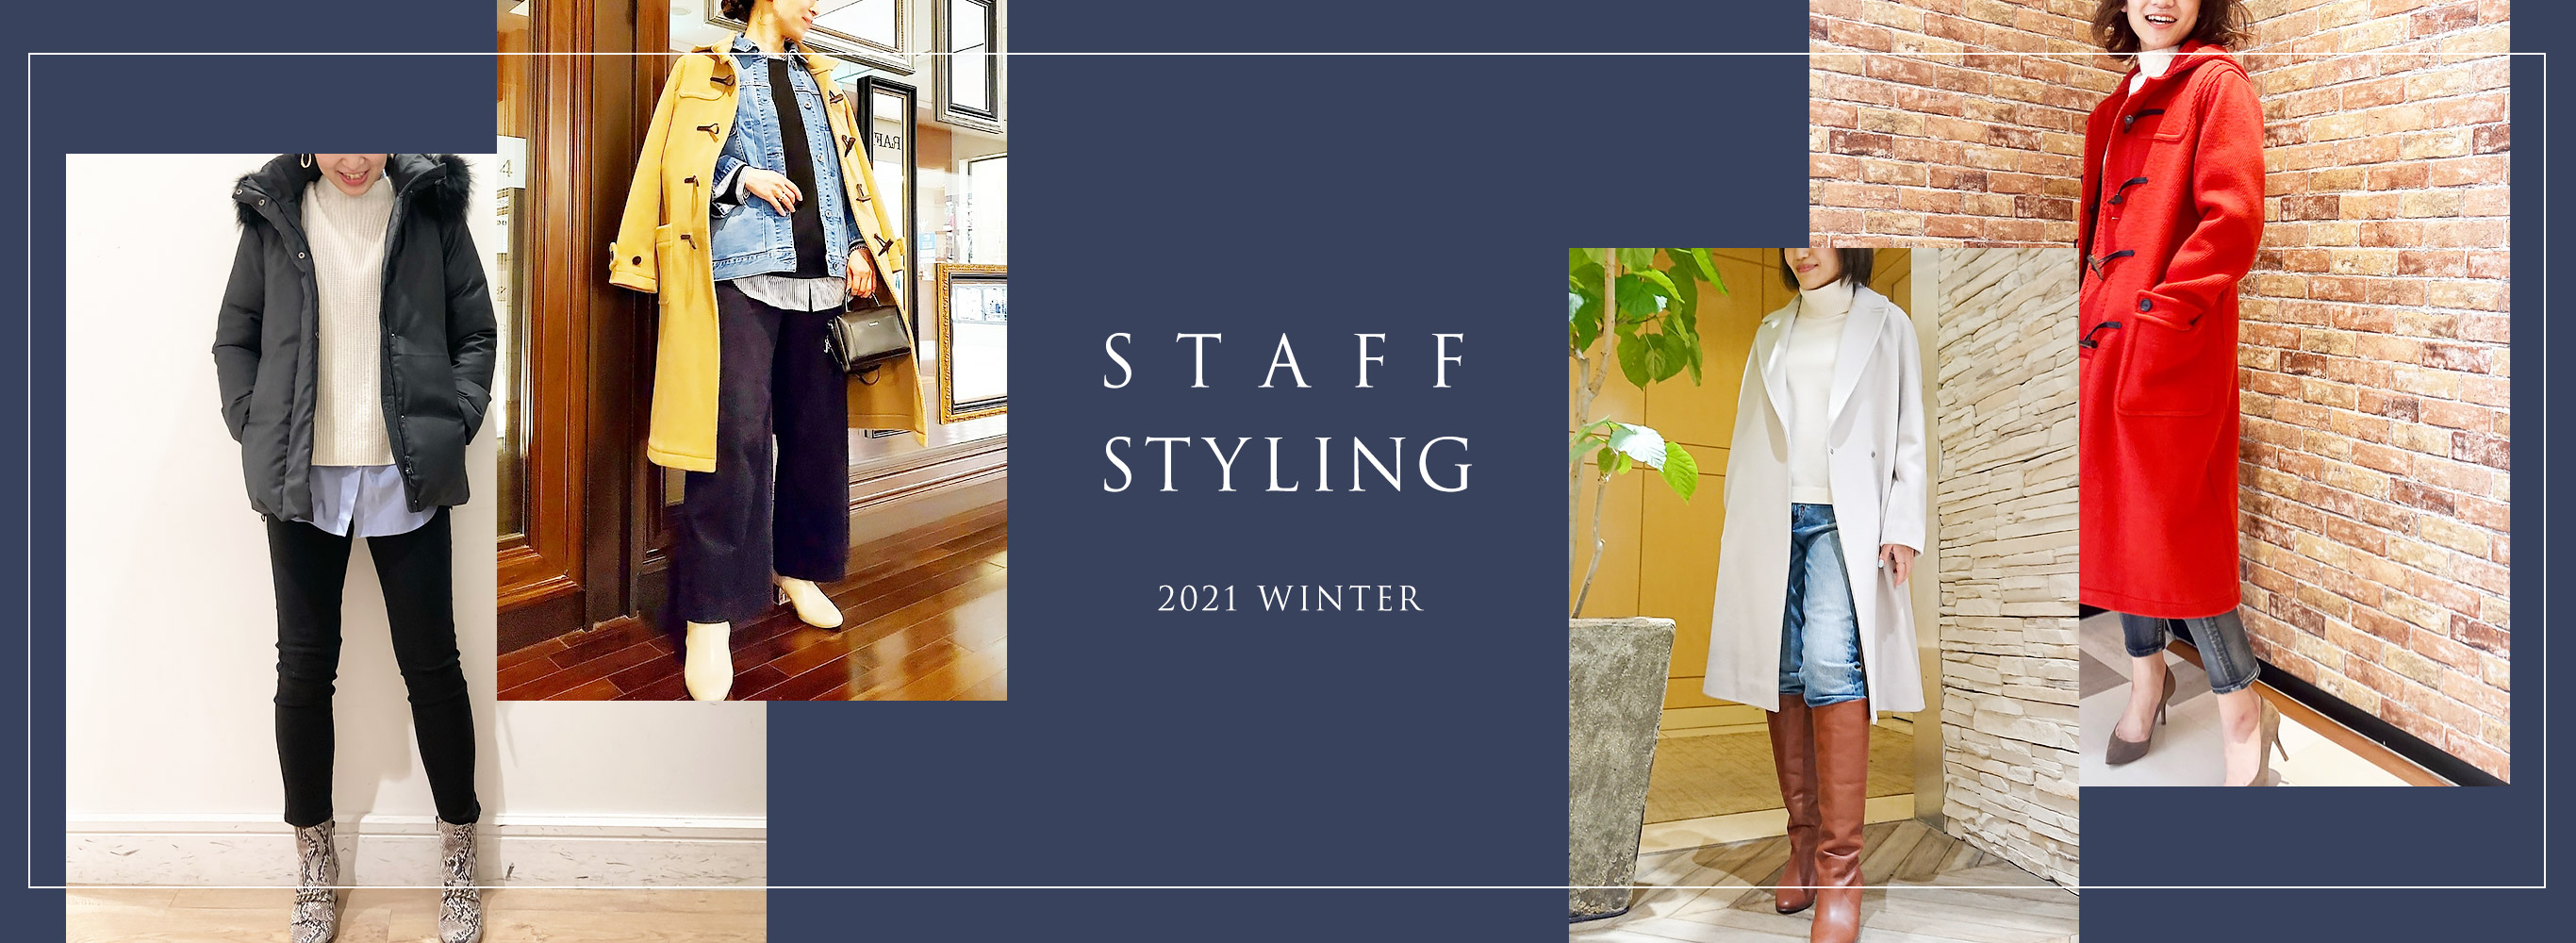 2021 WINTER STAFF STYLING